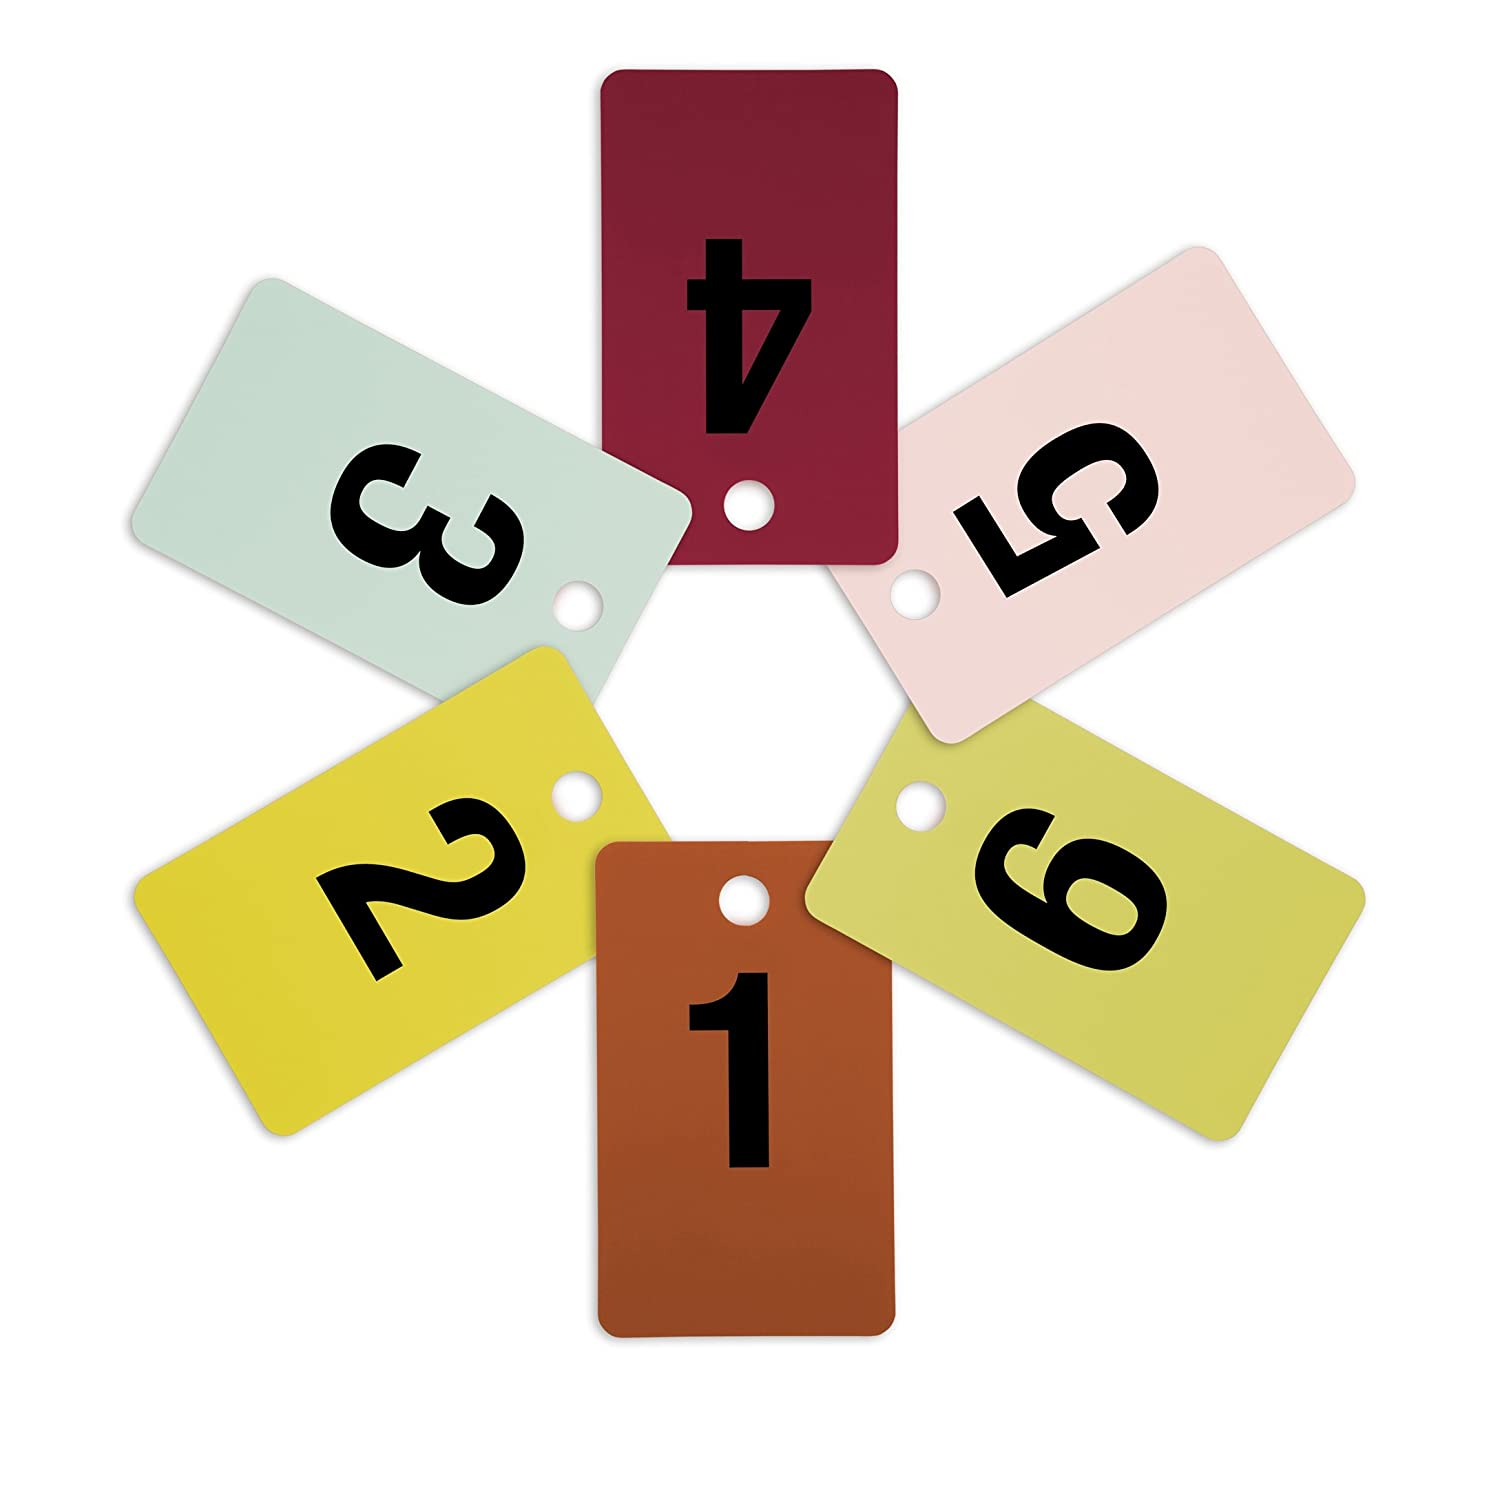 B00PZWS6R2 Mark Bric 8-FRT1-6 Fitting Room Tags, Includes Numbers 1-6 in Various Colors, 10 of Each Size (Pack of 60) 71A7qjCC2xL